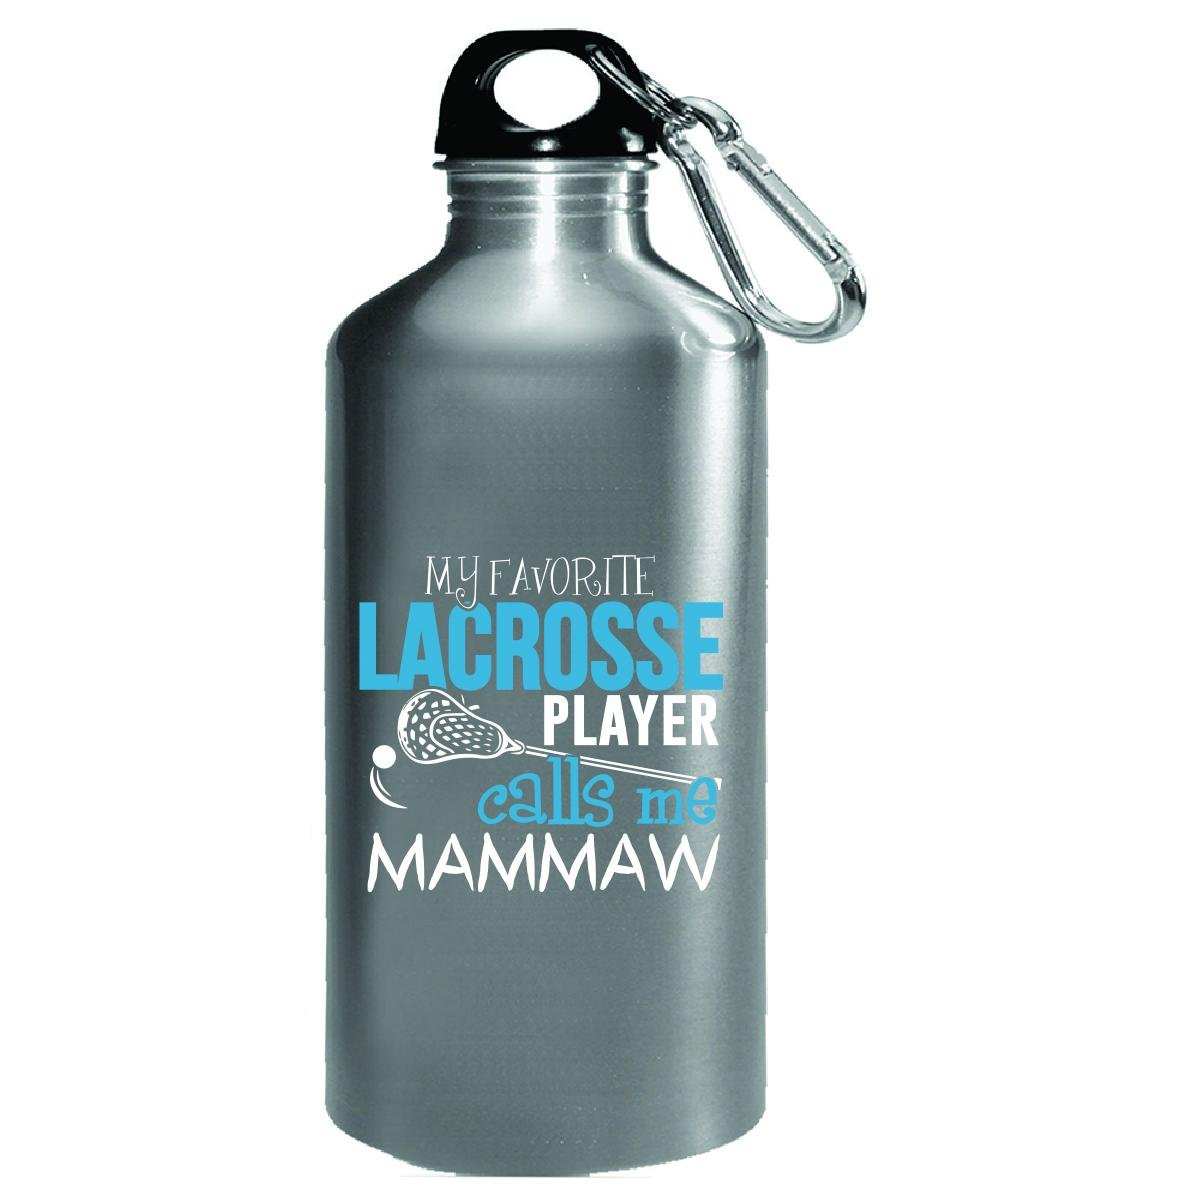 My Favorite Lacrosse Player Calls Me Mammaw - Water Bottle